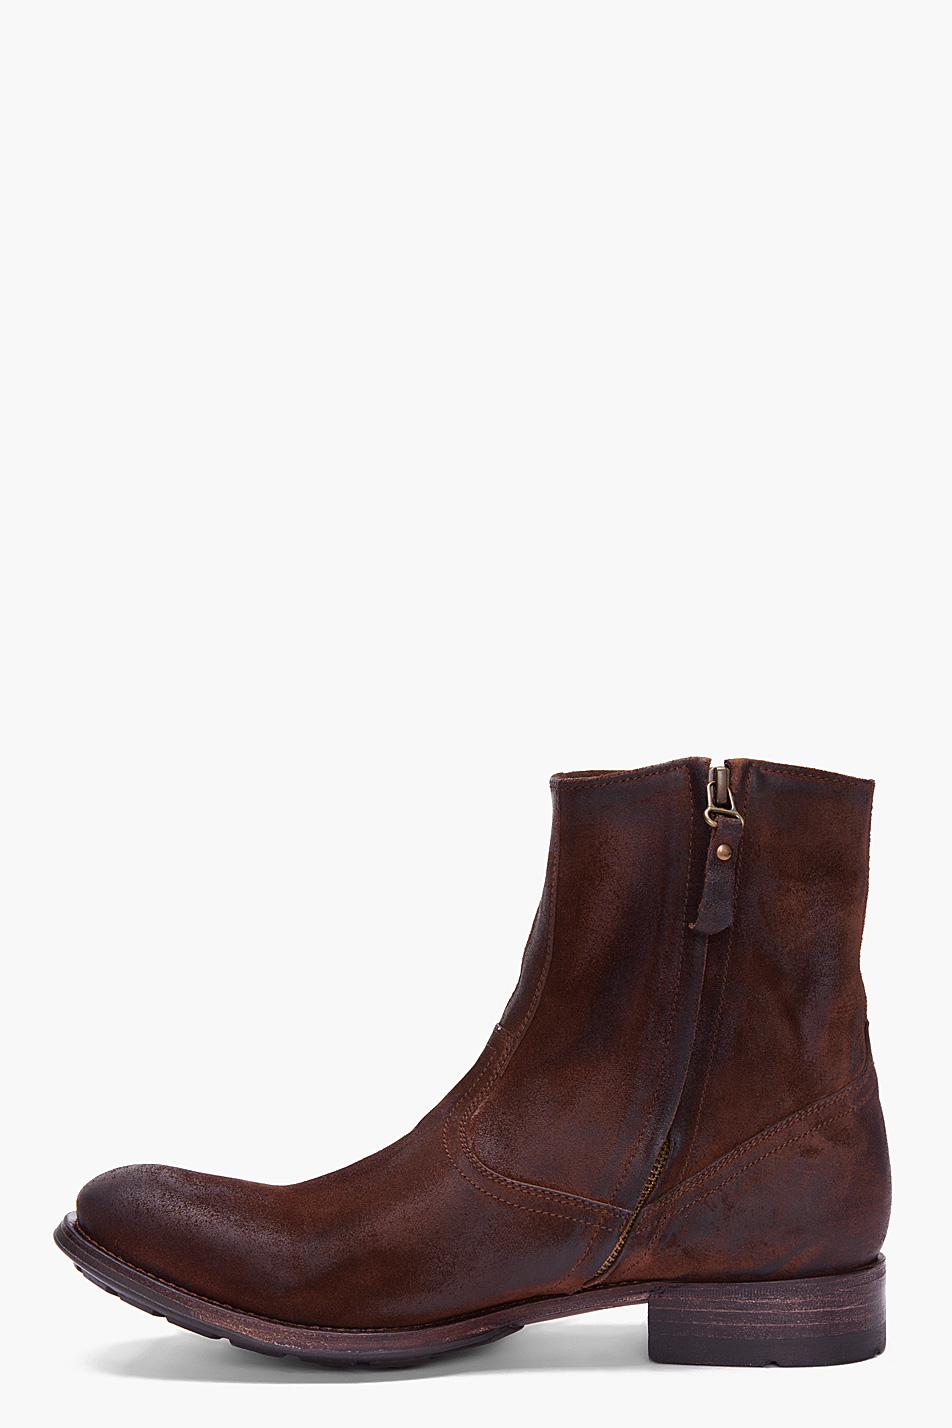 ndc espresso christopher softy boots in brown for lyst